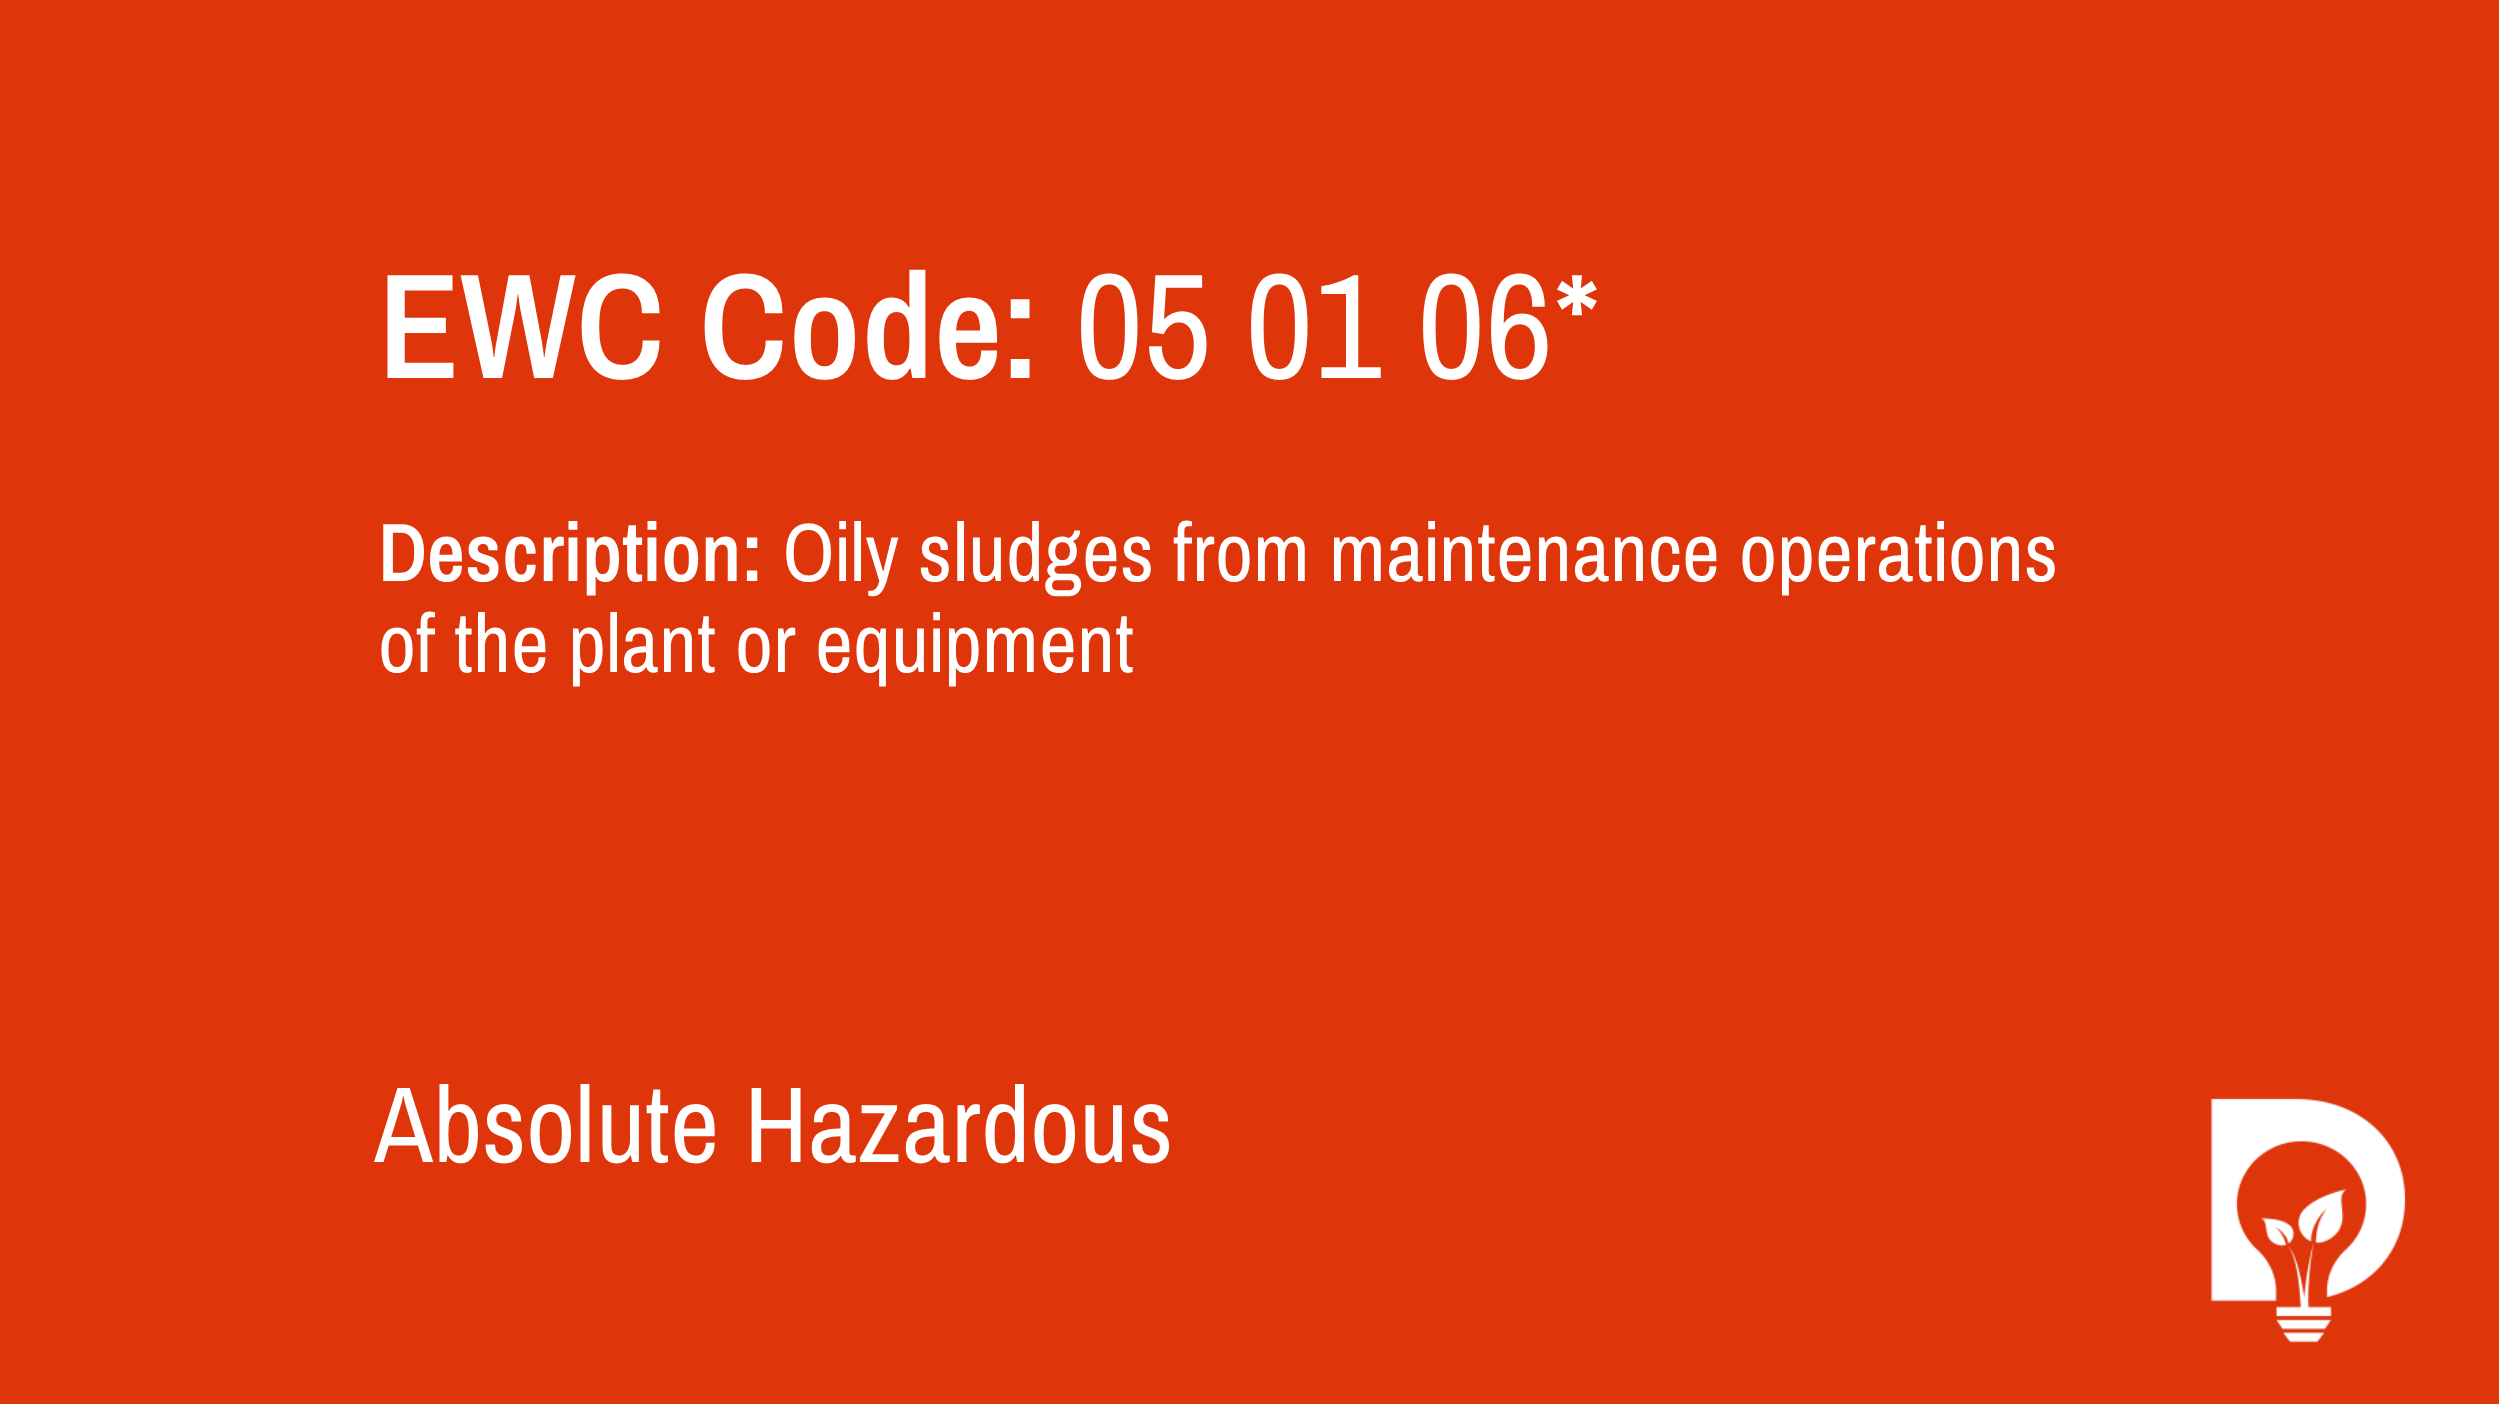 EWC Code: 05 01 06* - oily sludges from maintenance operations of the plant or equipment. Type: Absolute Hazardous. Image by Dsposal